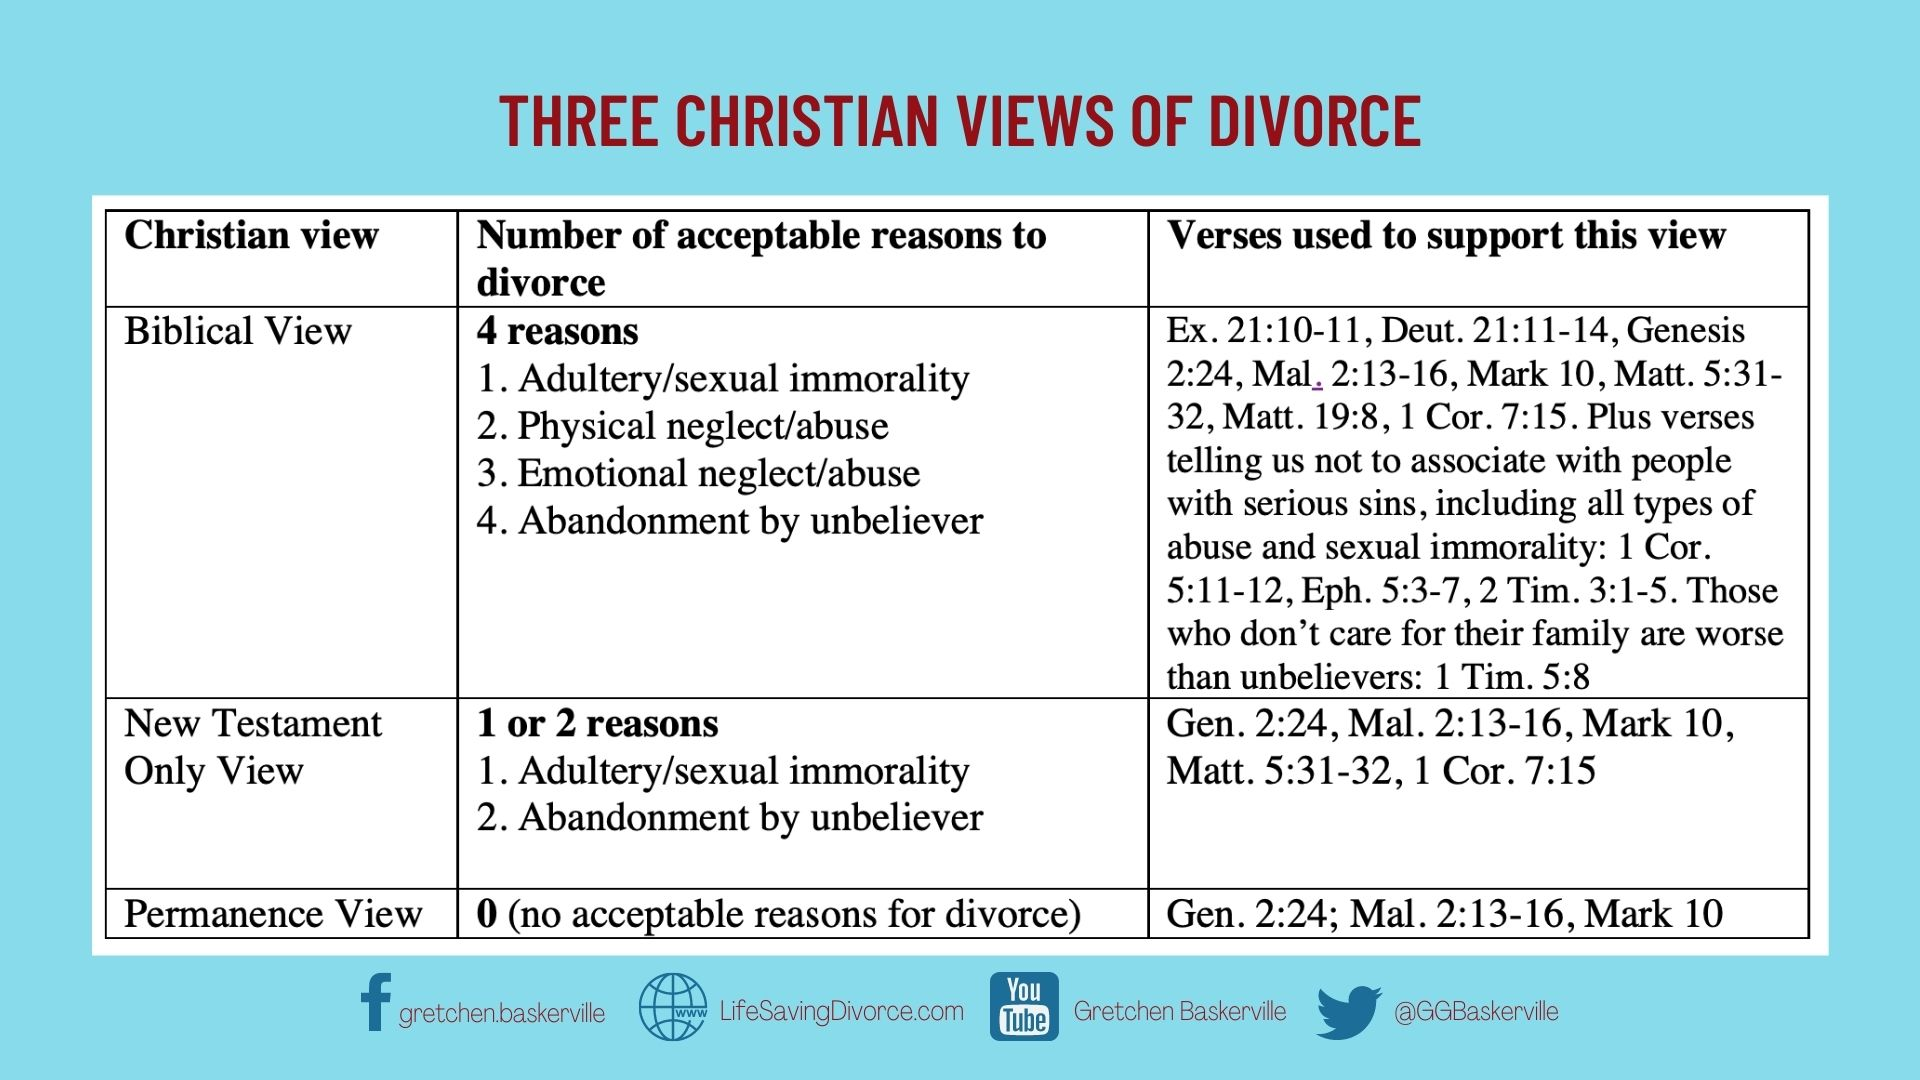 Chart showing Three Christian Views of Divorce: Biblical view, New Testament view, Permanence View